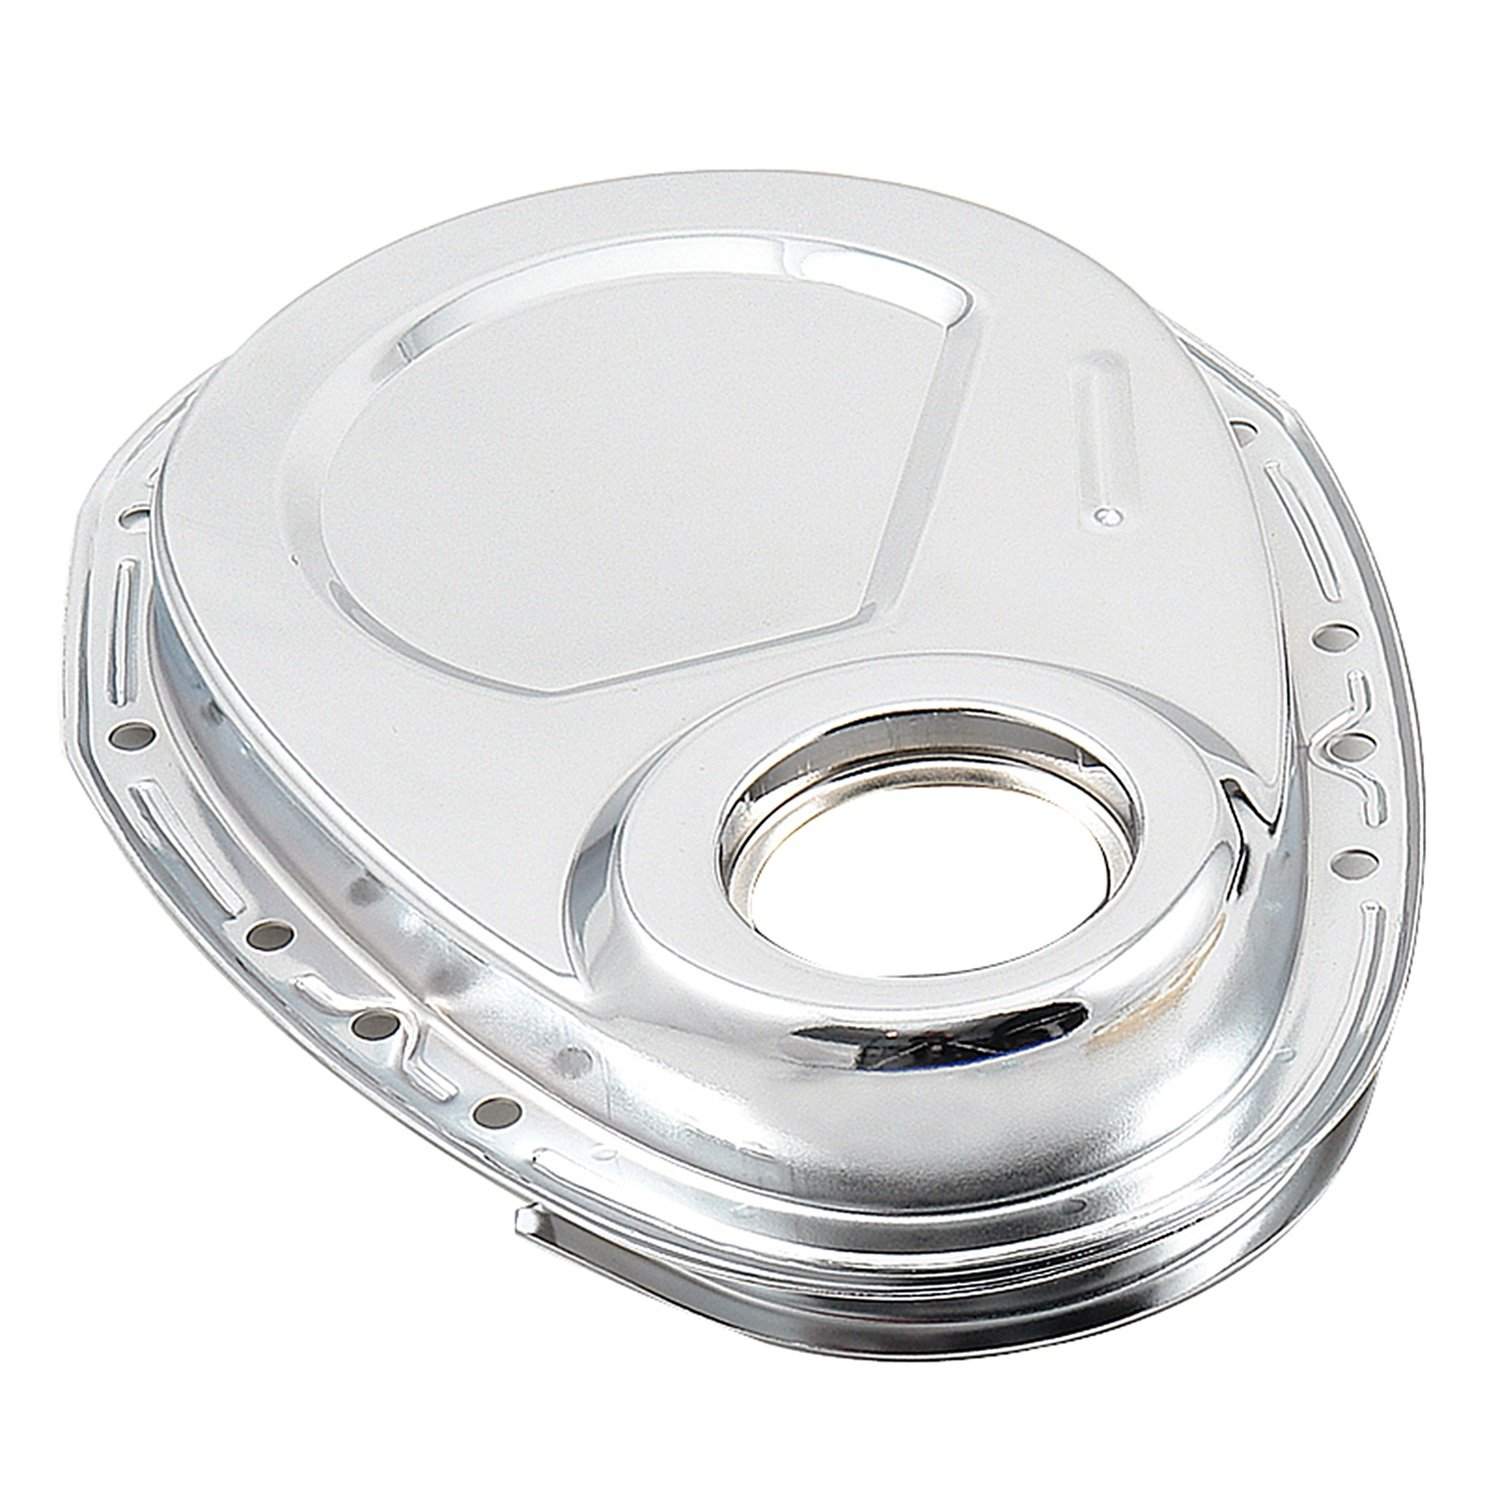 Mr. Gasket 4595 Chrome Plated Timing Cover Only by Mr. Gasket